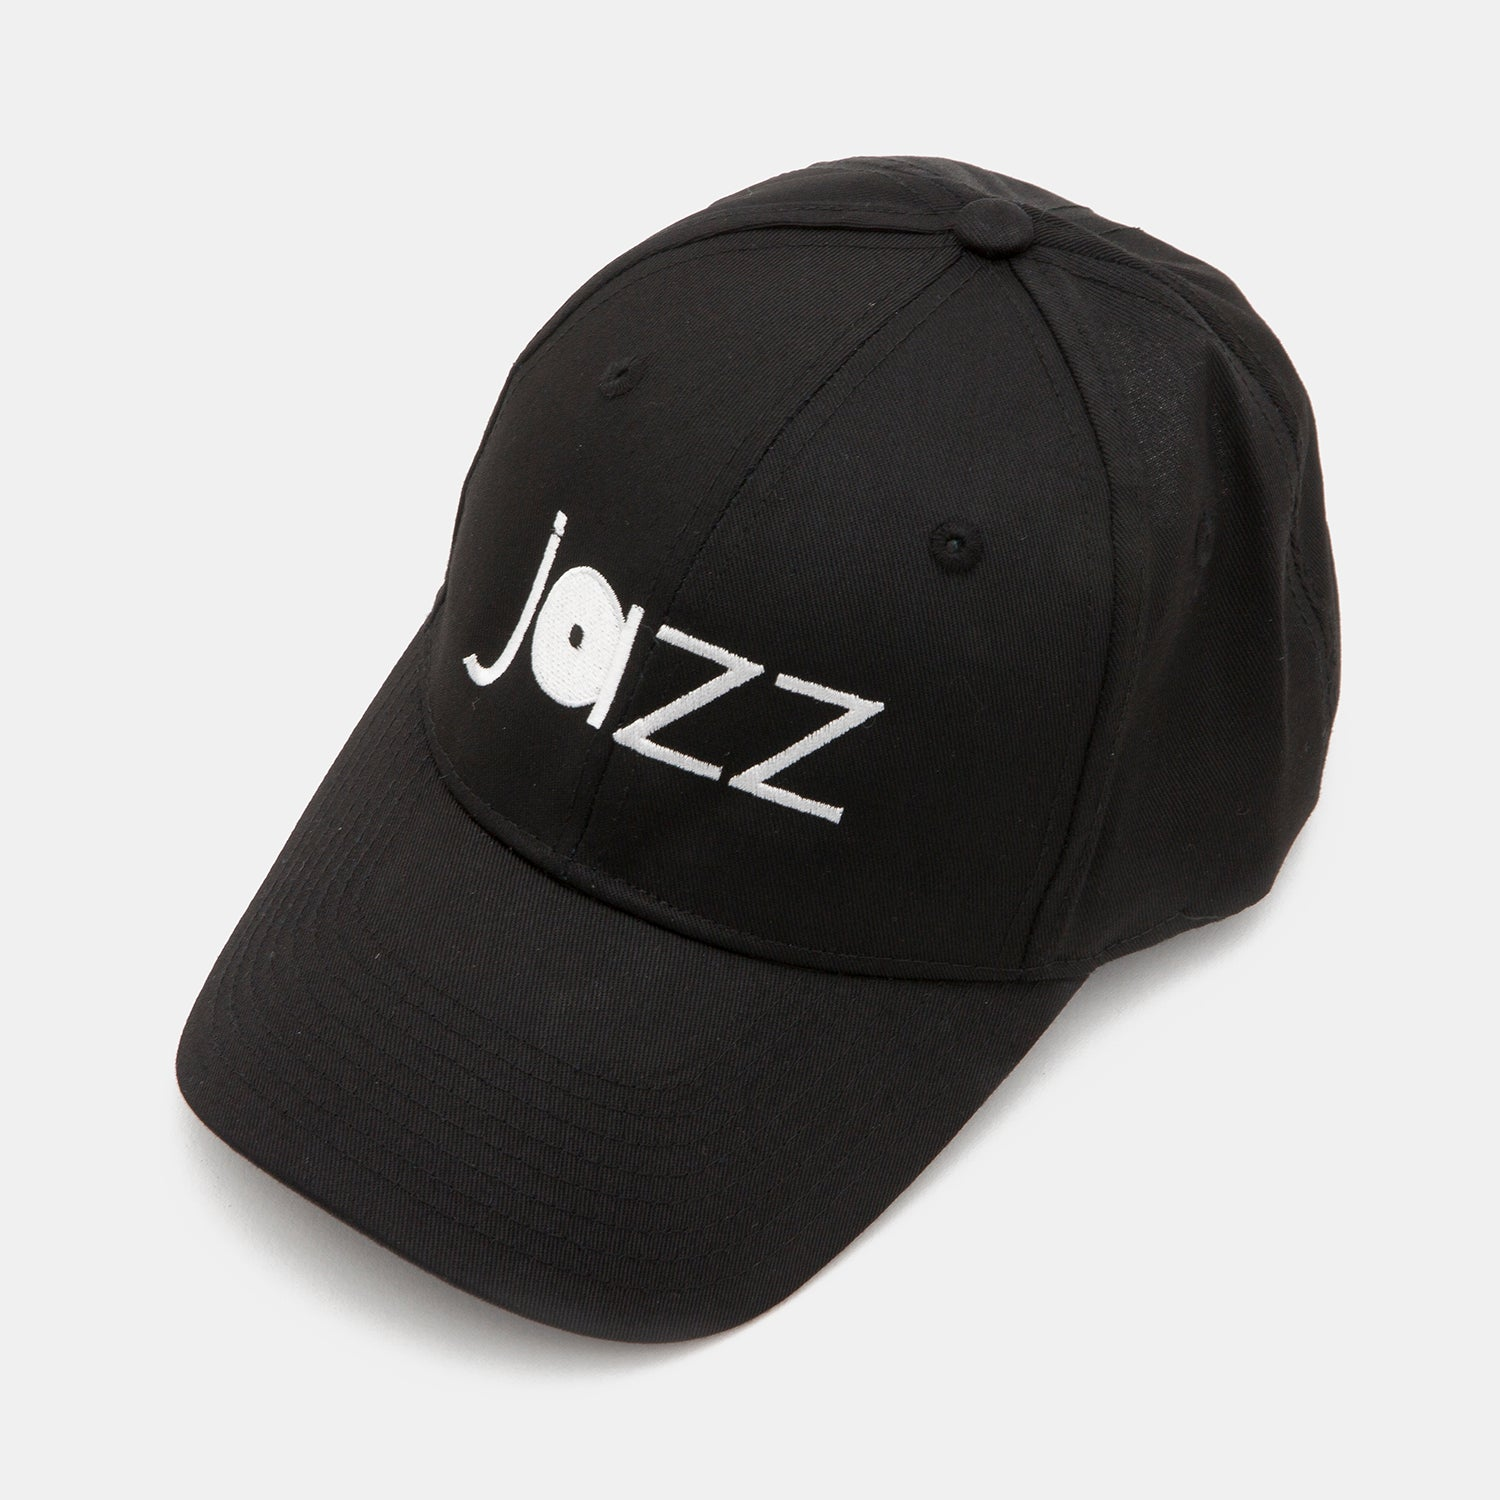 Signature Jazz Hat – Jazz at Lincoln Center Shop 895e72a15ad